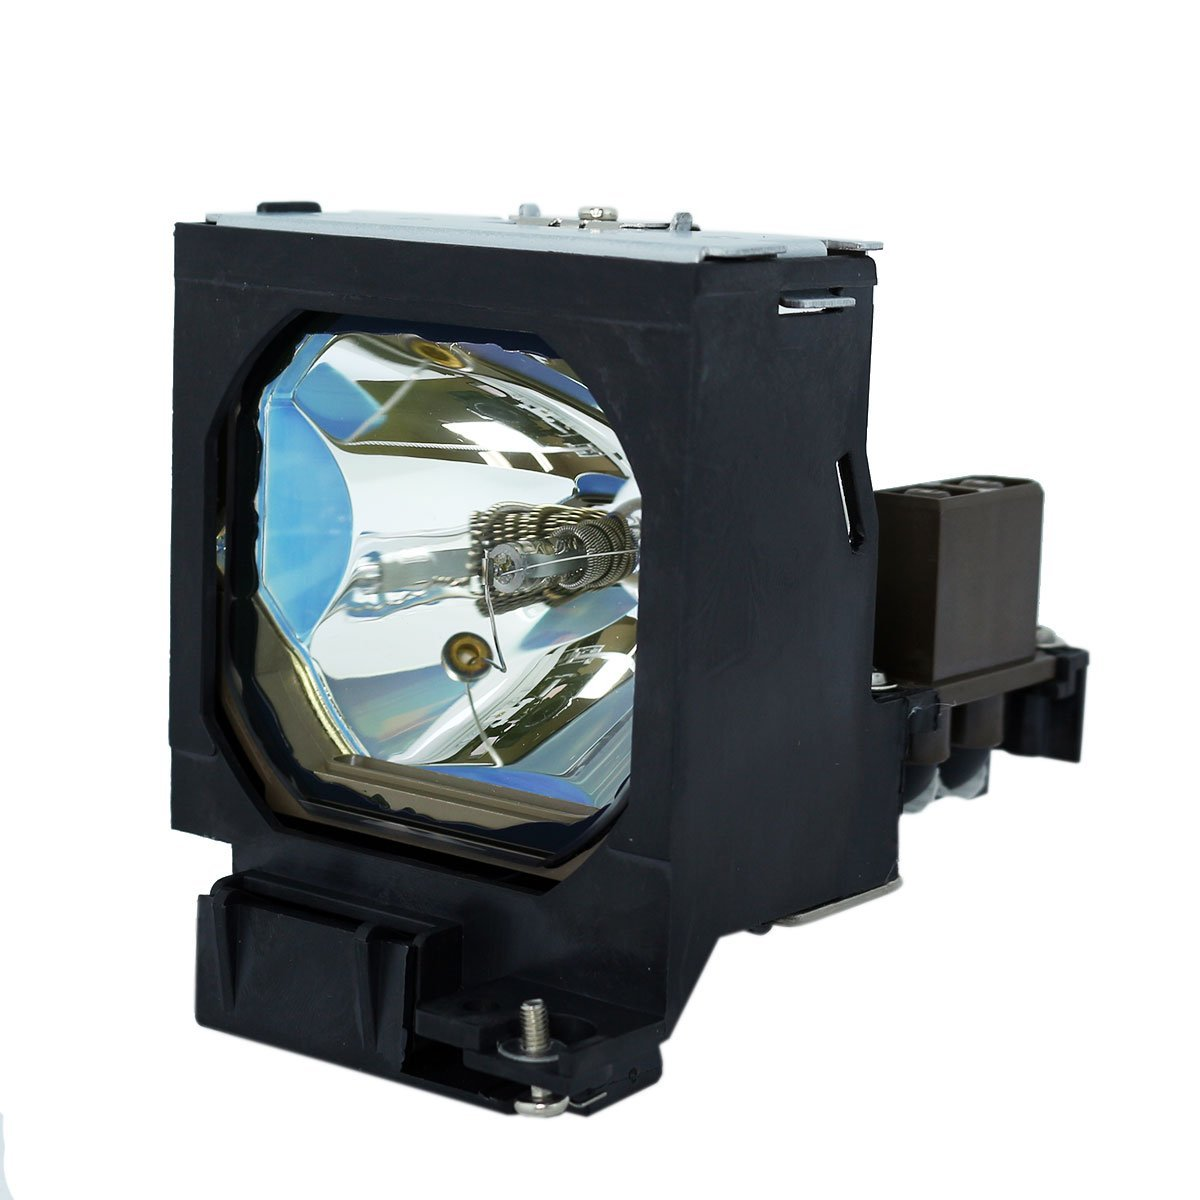 AuraBeam Professional Sony LMP-P201 Projector Replacement Lamp with Housing (Powered by Ushio)